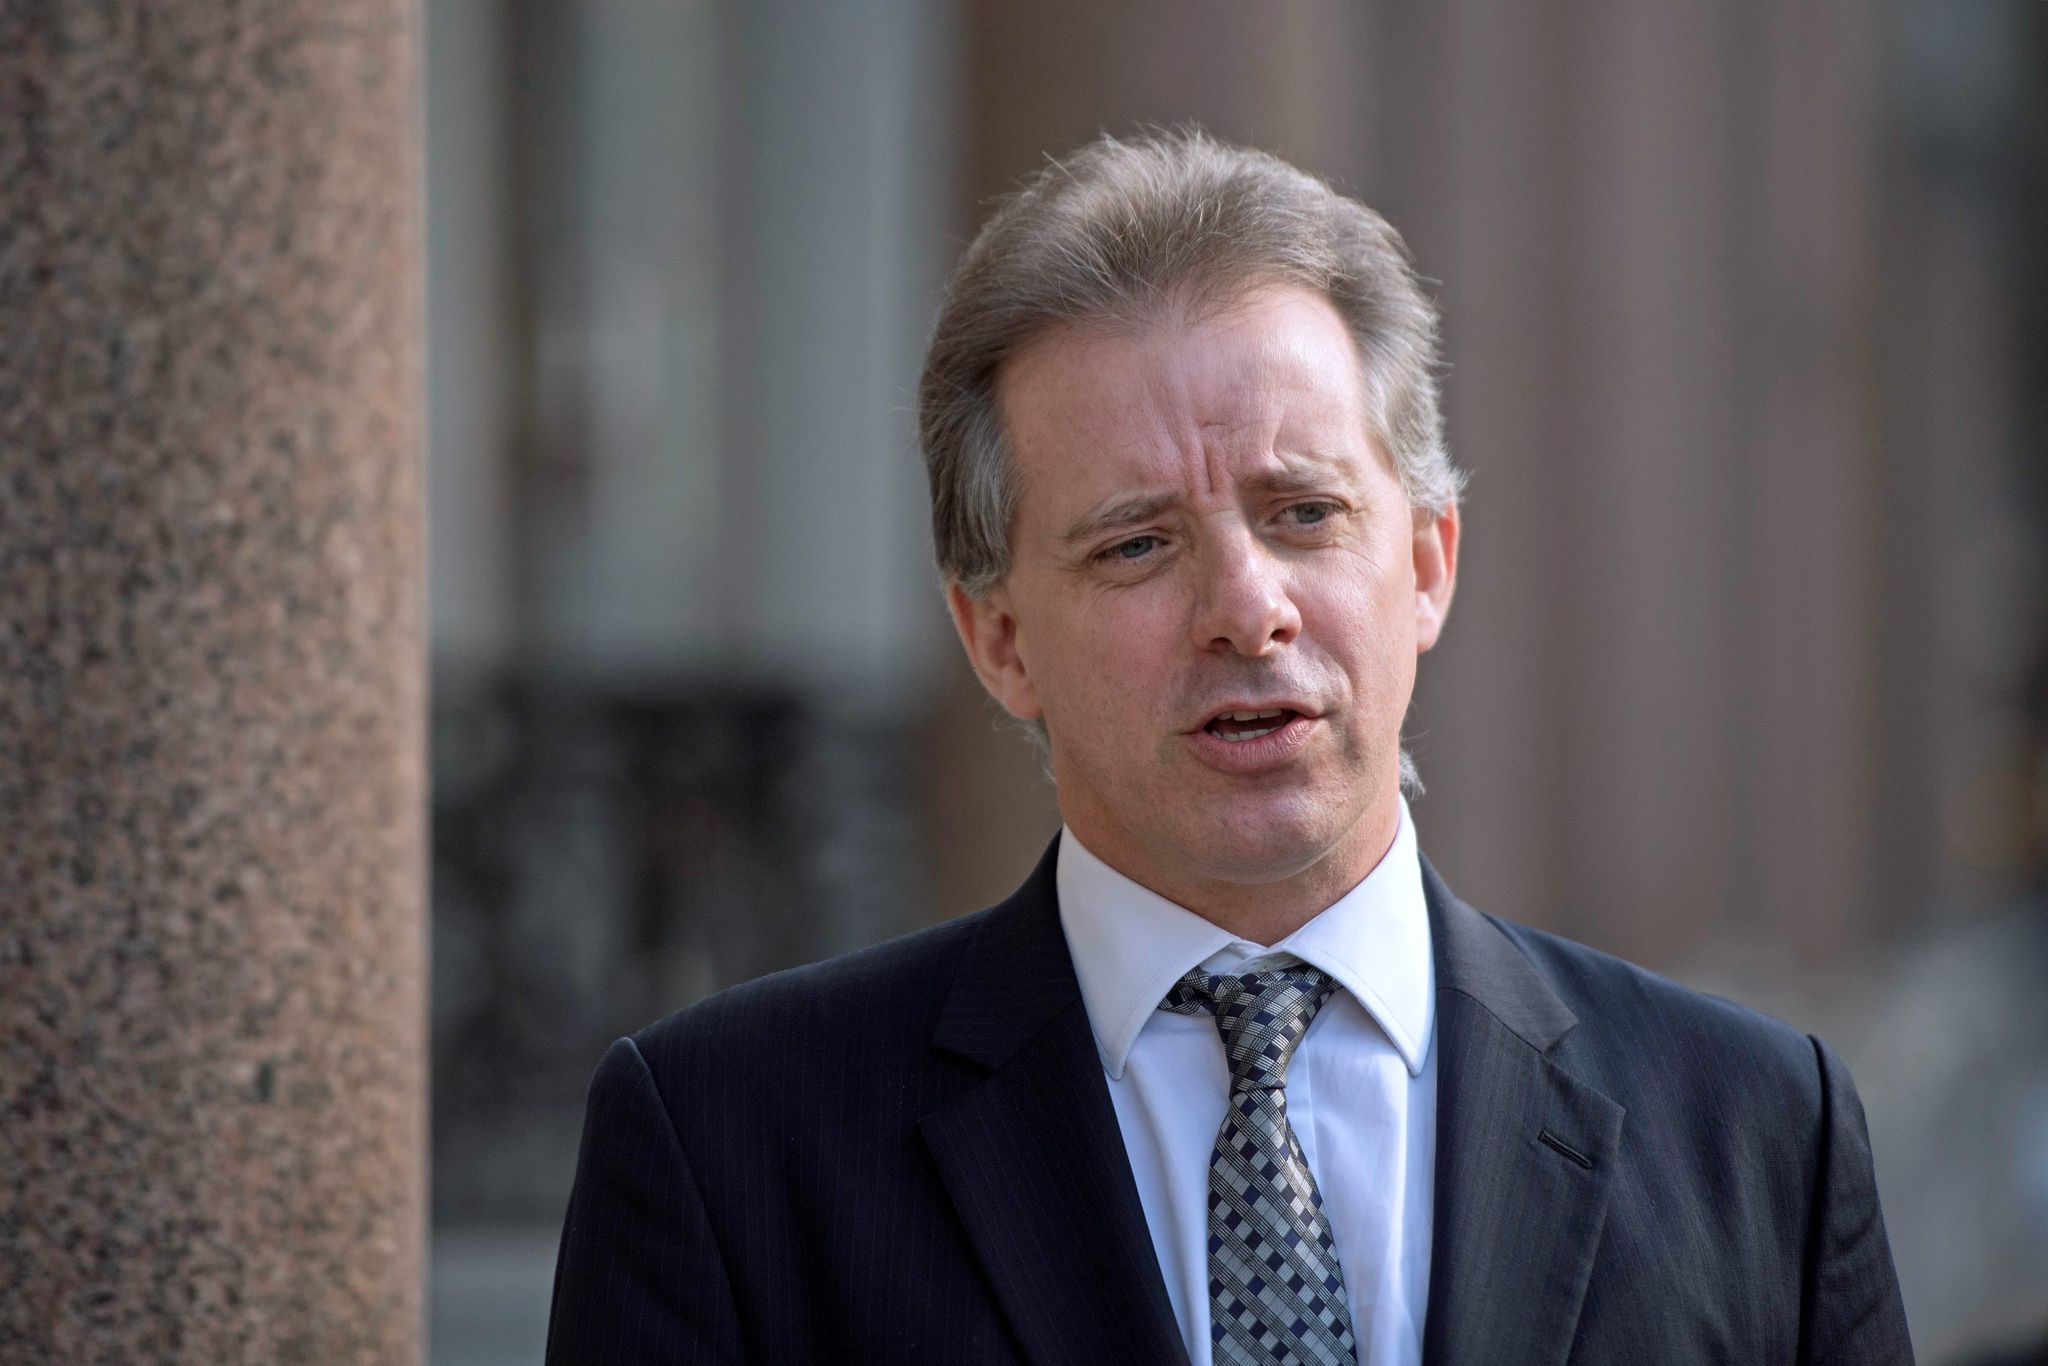 Steele dossier roils Capitol Hill anew after revelations about bias